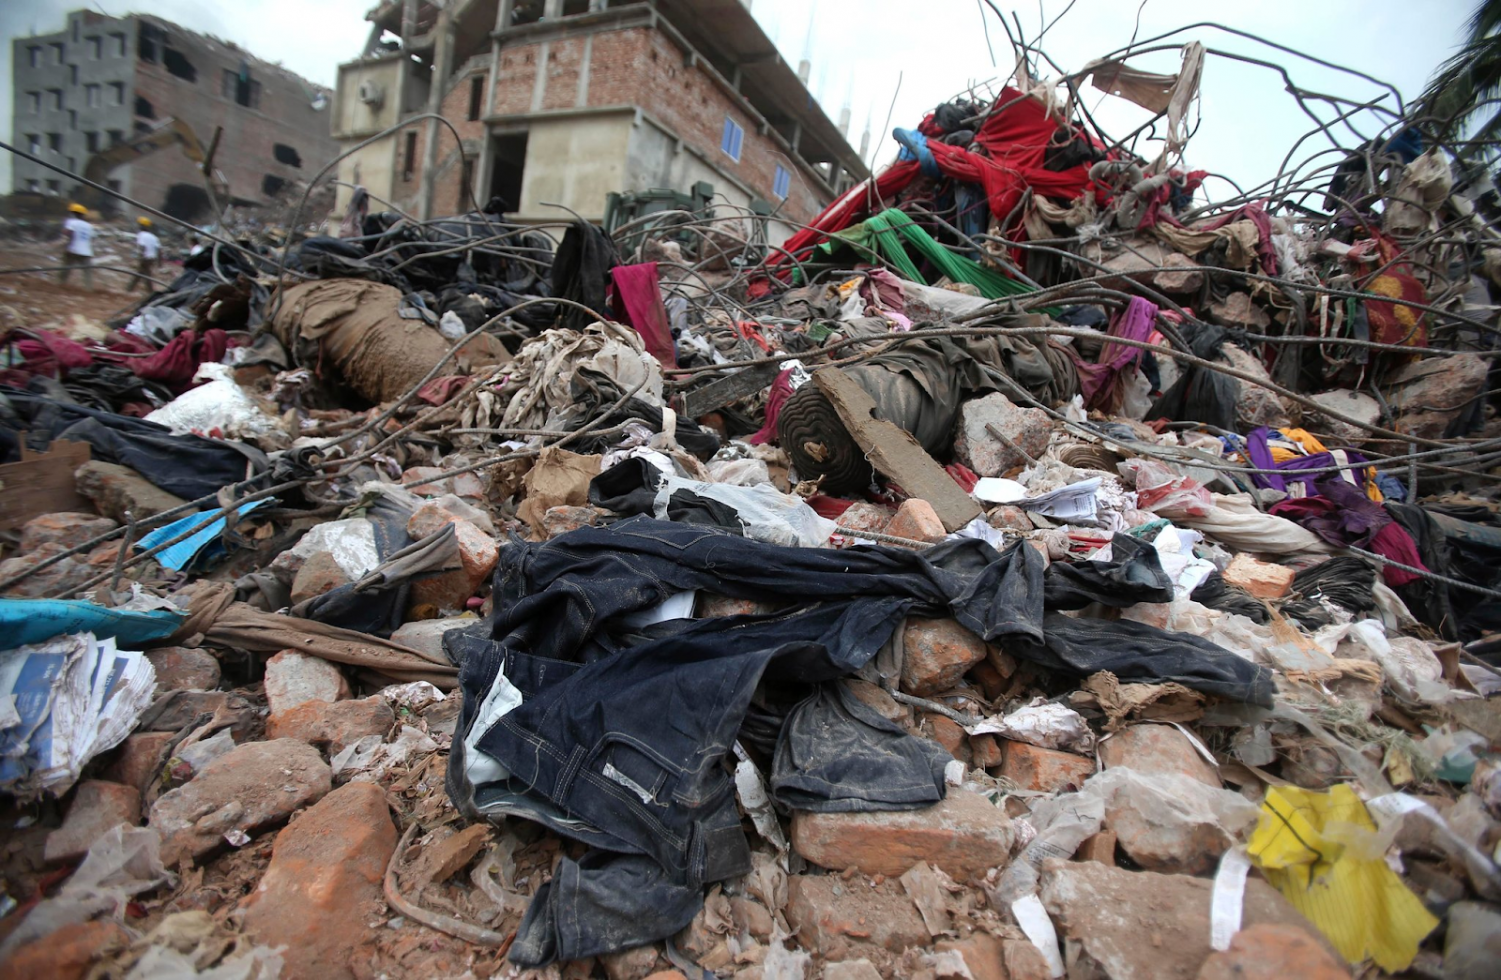 Fast Fashion is quickly polluting the planet; together we can slow it down.